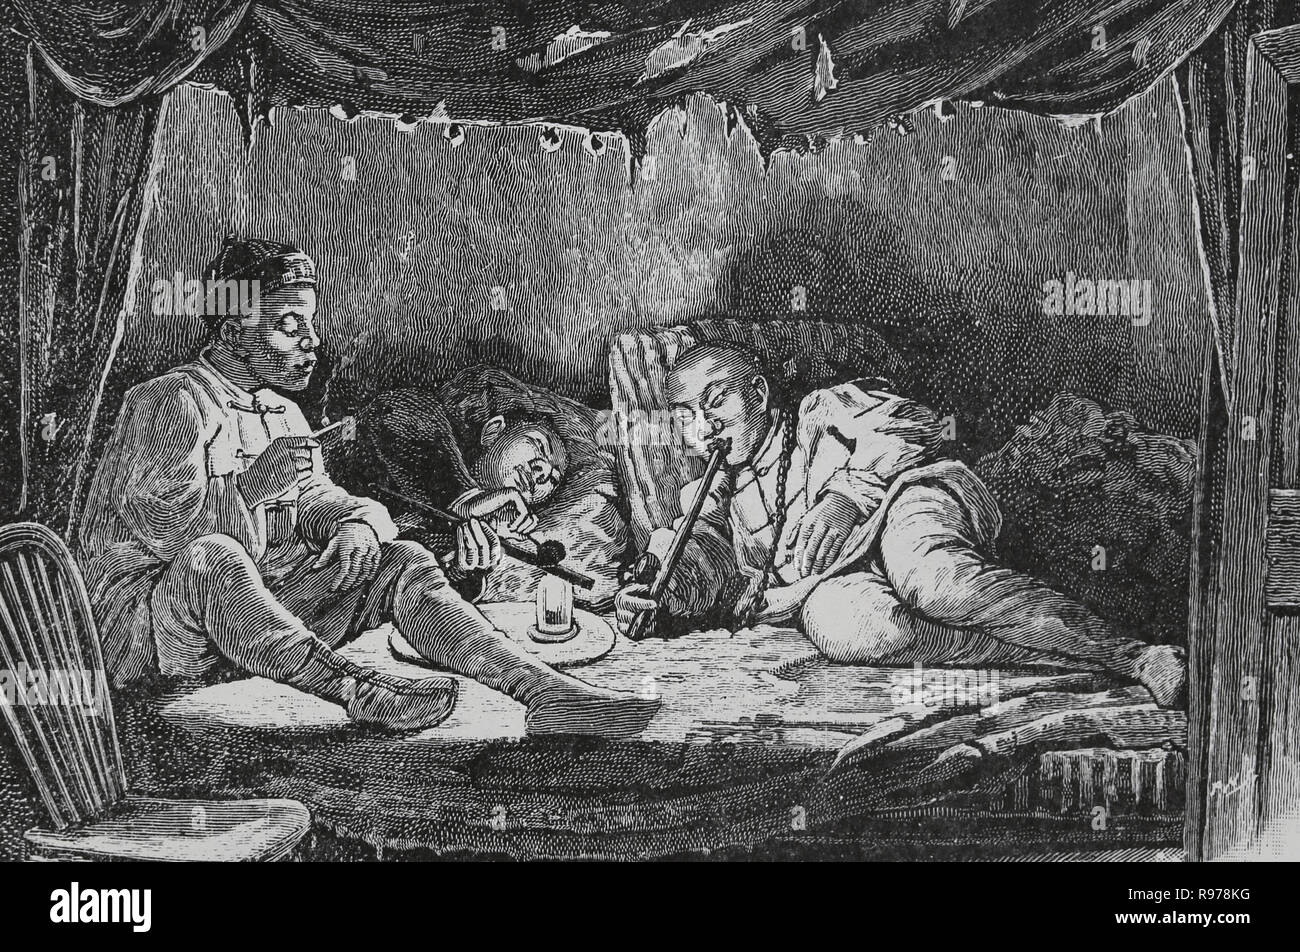 Opium smokers in a opium den  Engraving, 19th century Stock Photo